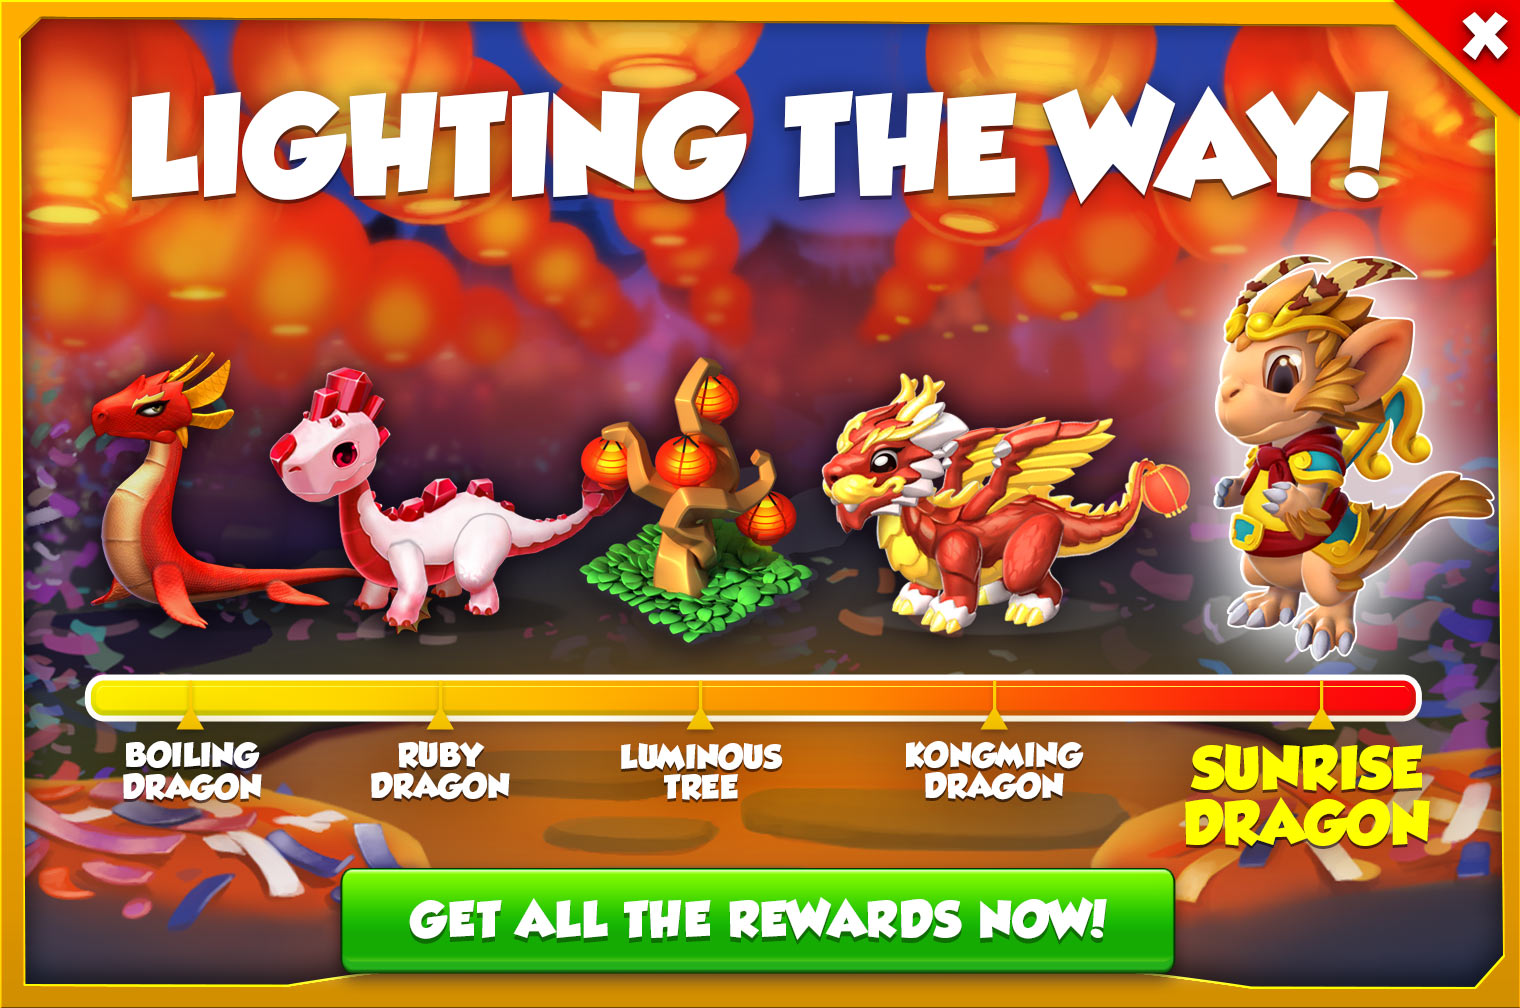 new Solo Event is here! Lighting the Way is a Chinese New Year's